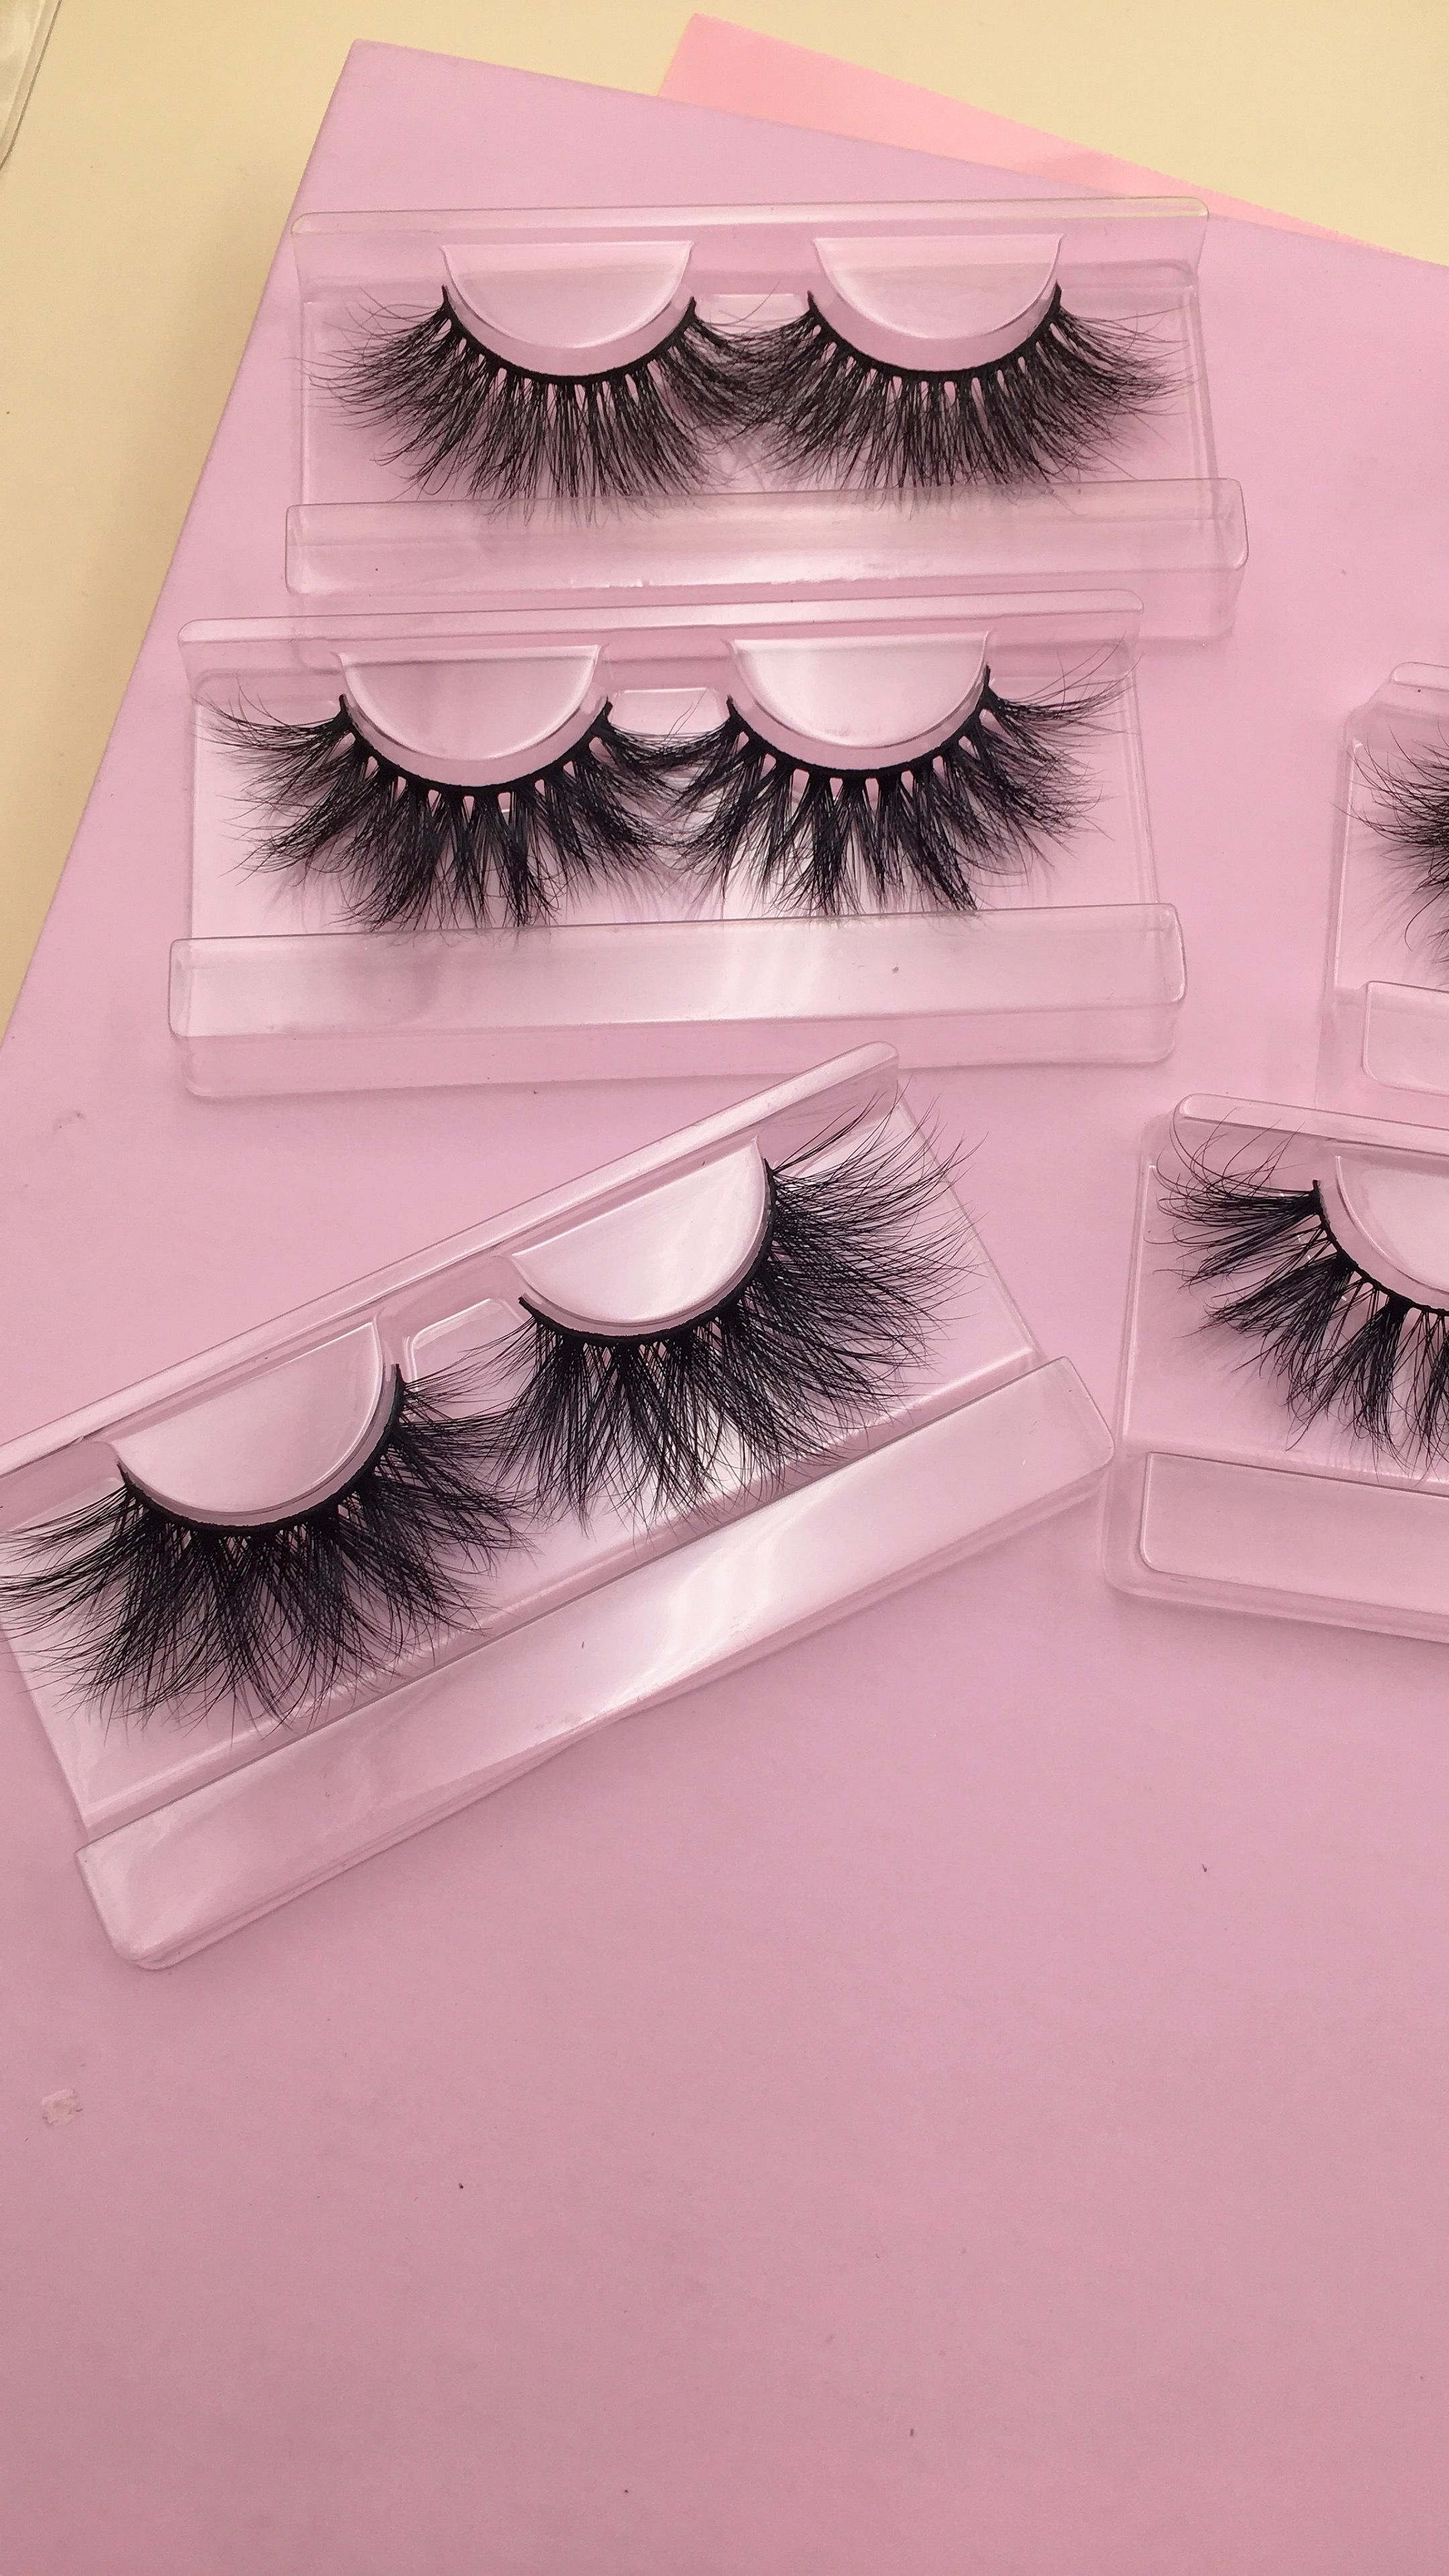 We supply different kind of 3d mink lashes, 3d silk lashes